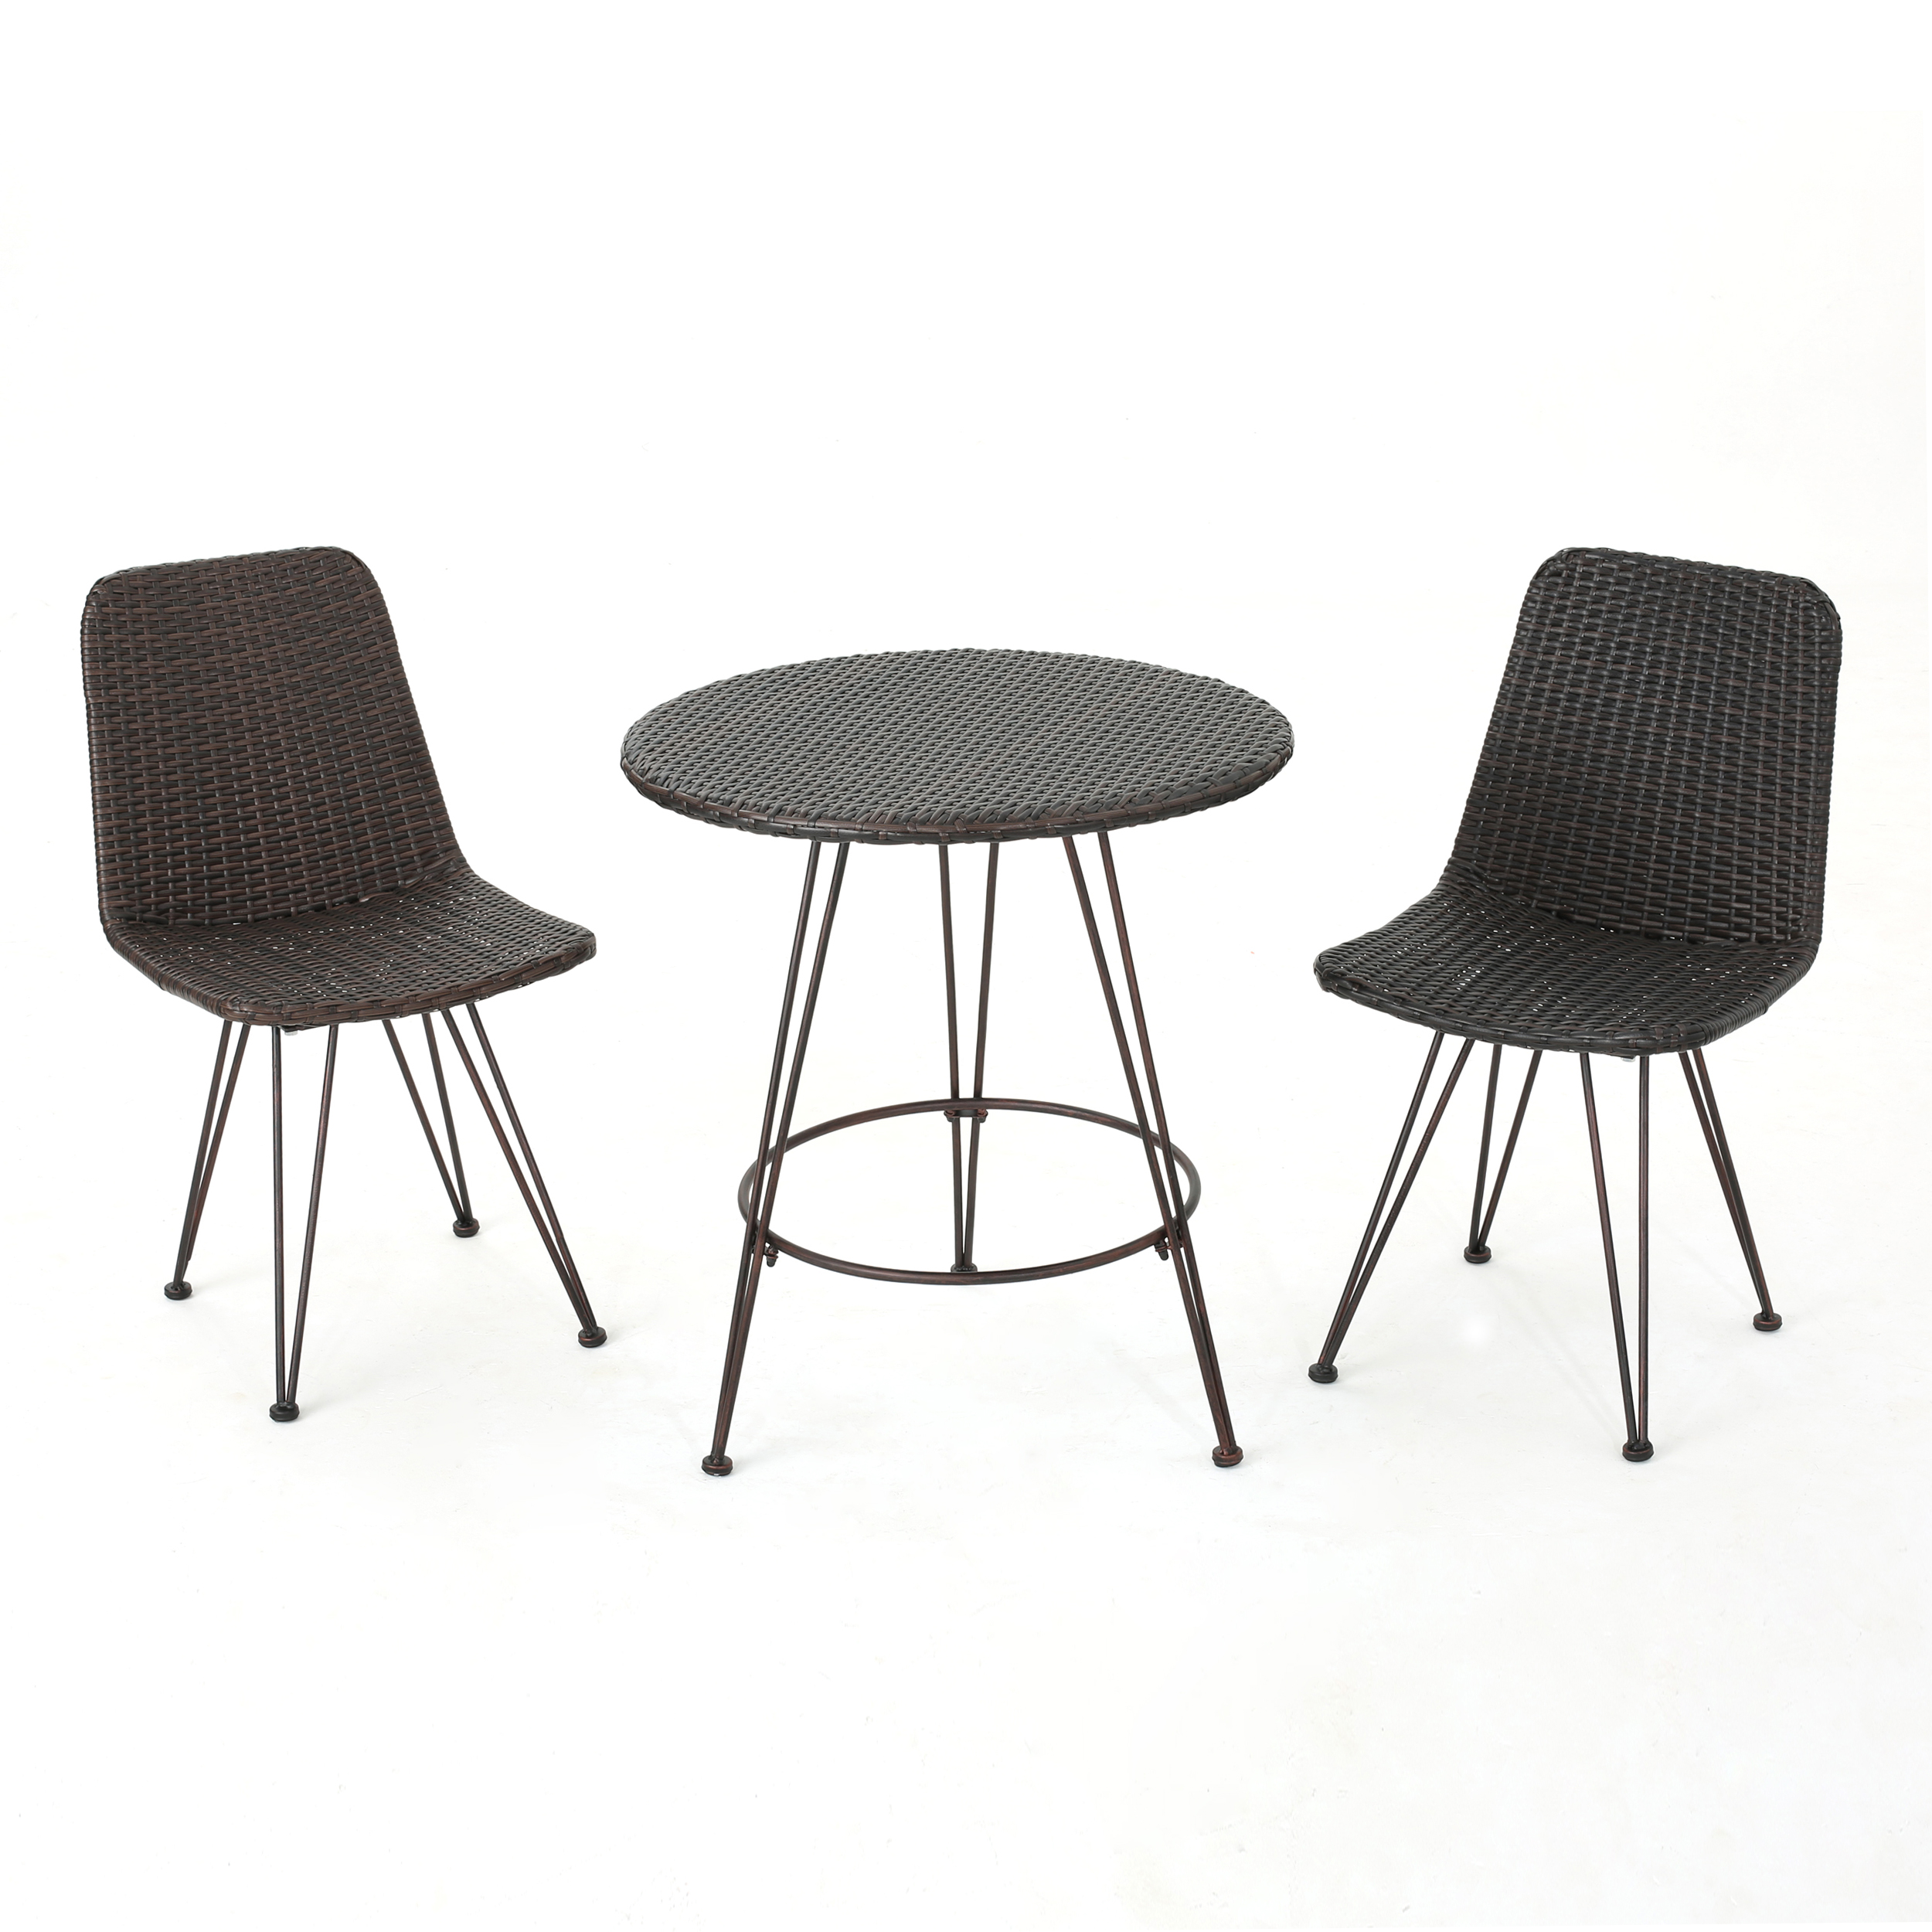 Pines Outdoor Wicker 3 Piece Bistro Set with Hairpin Iron Legs, Multibrown and Black Brush Copper